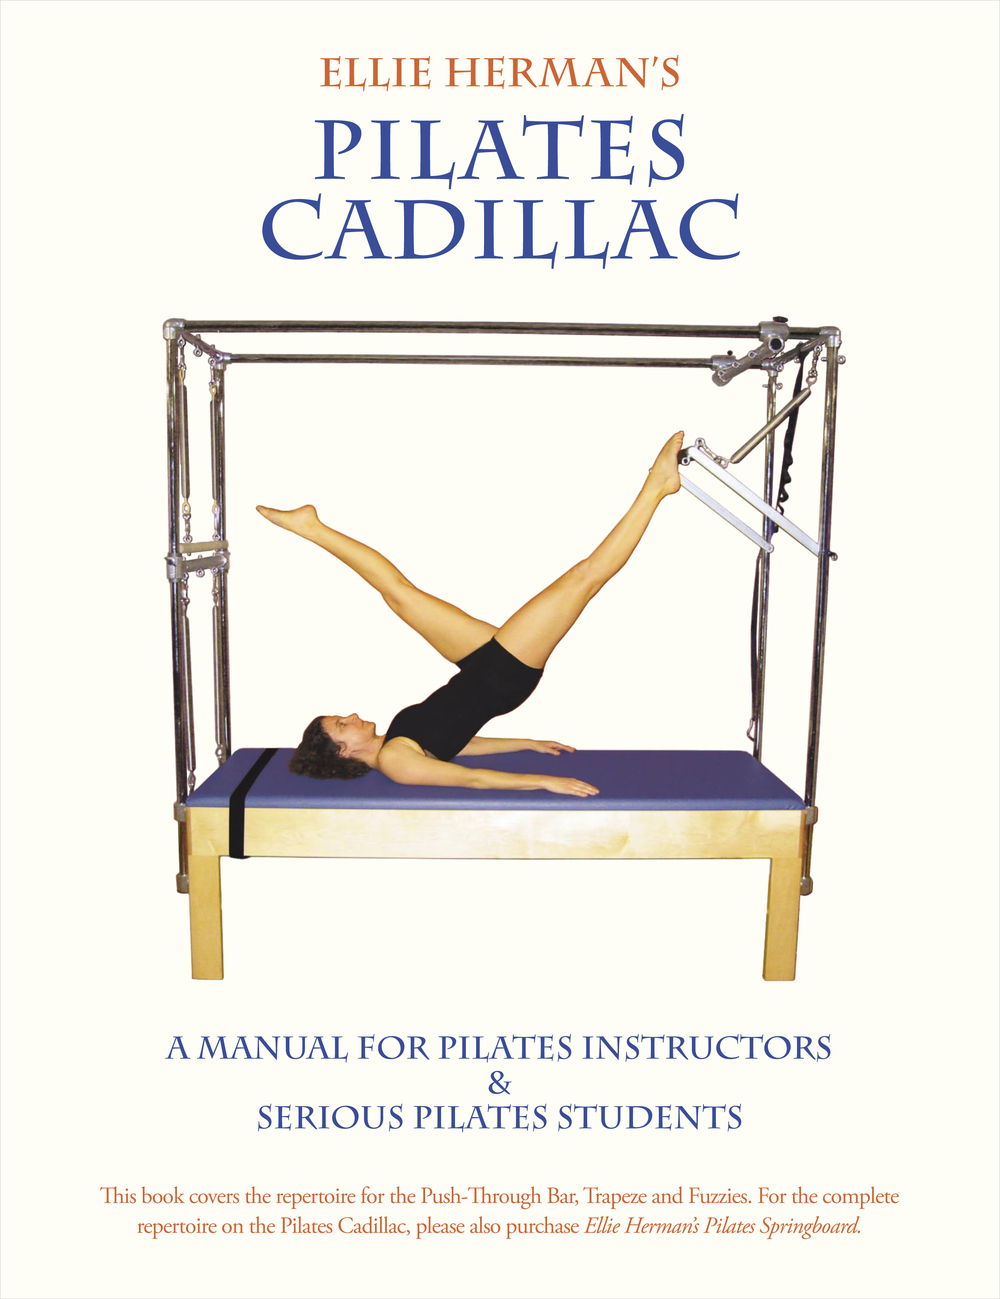 Pilates Chair Manual P Ilates Merrithew Canada Cadillac Trapeze Table Malibu Review Array Shop U2014 Ellie Herman Rh Elliehermanpilates